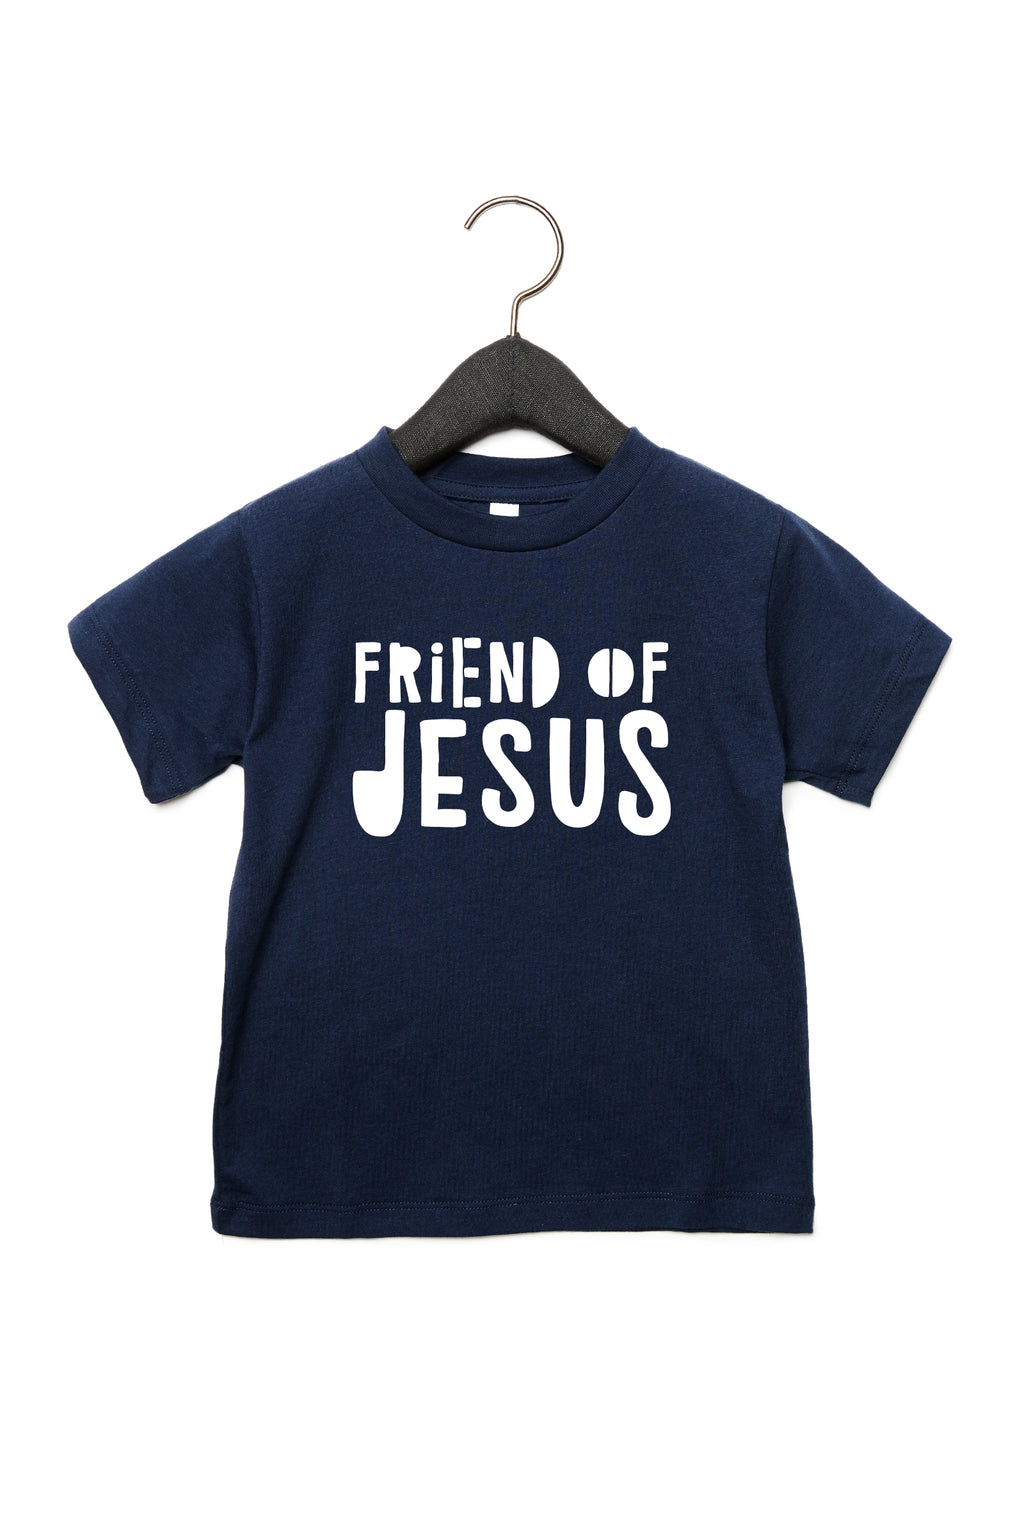 (PRE-ORDER) Friend of Jesus™️ Toddler T-Shirt | Navy